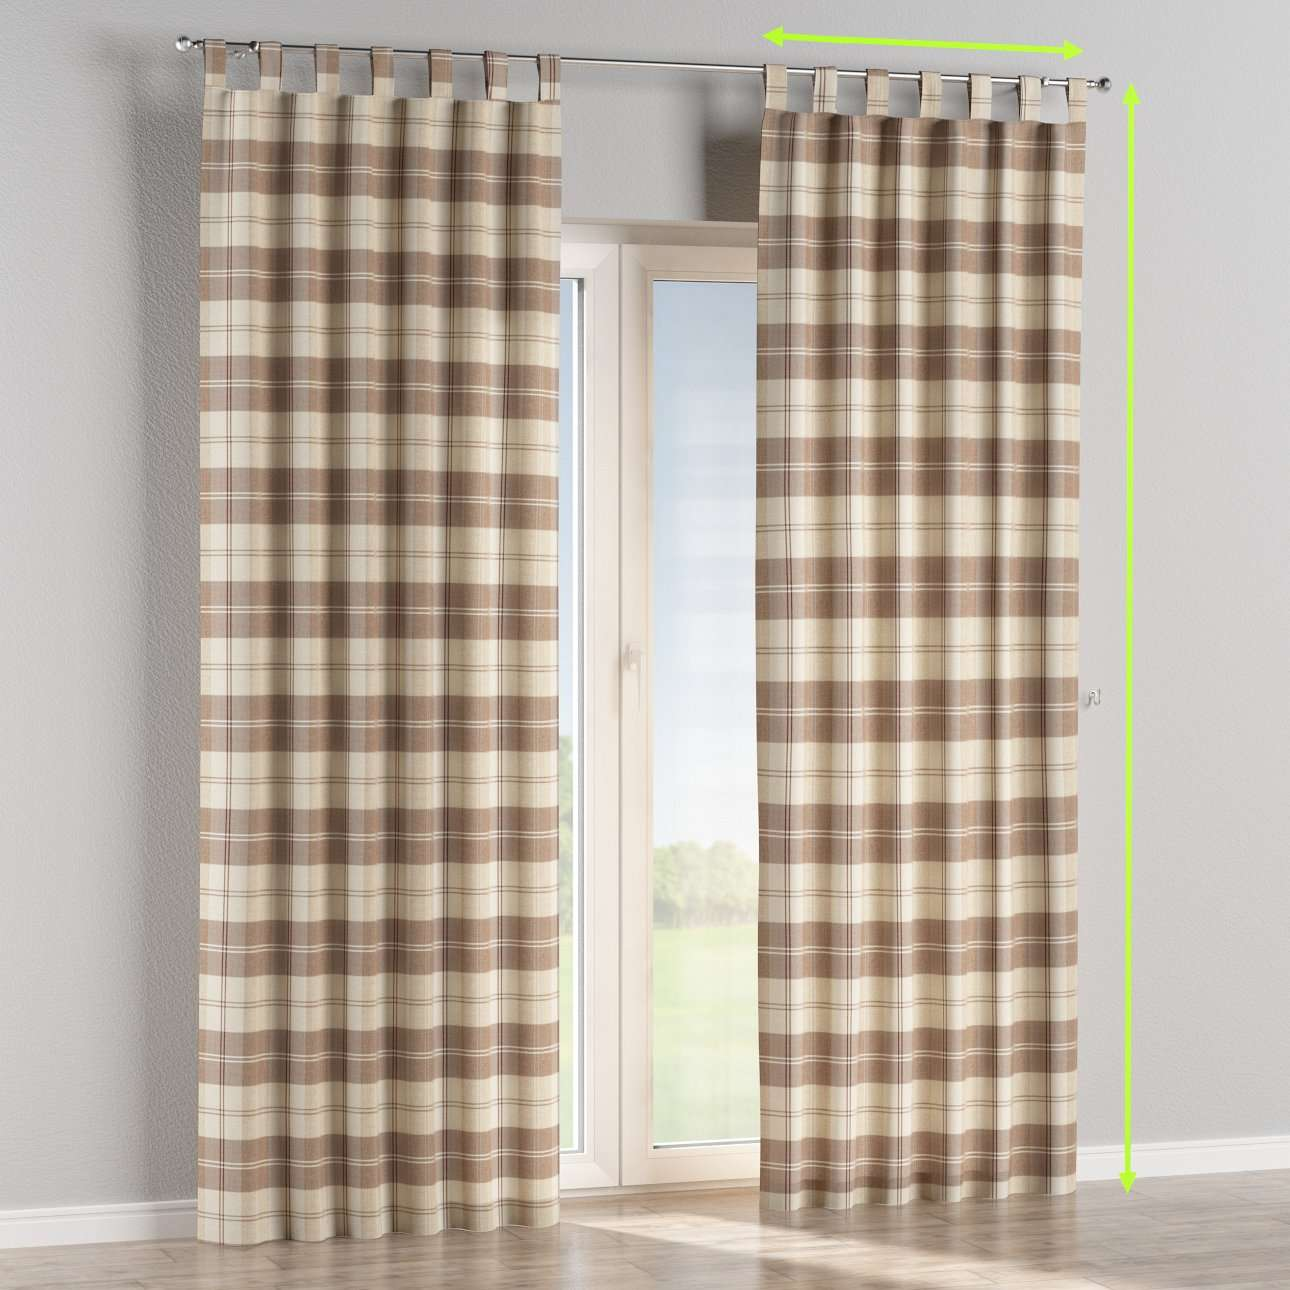 Tab top lined curtains in collection Edinburgh, fabric: 115-80